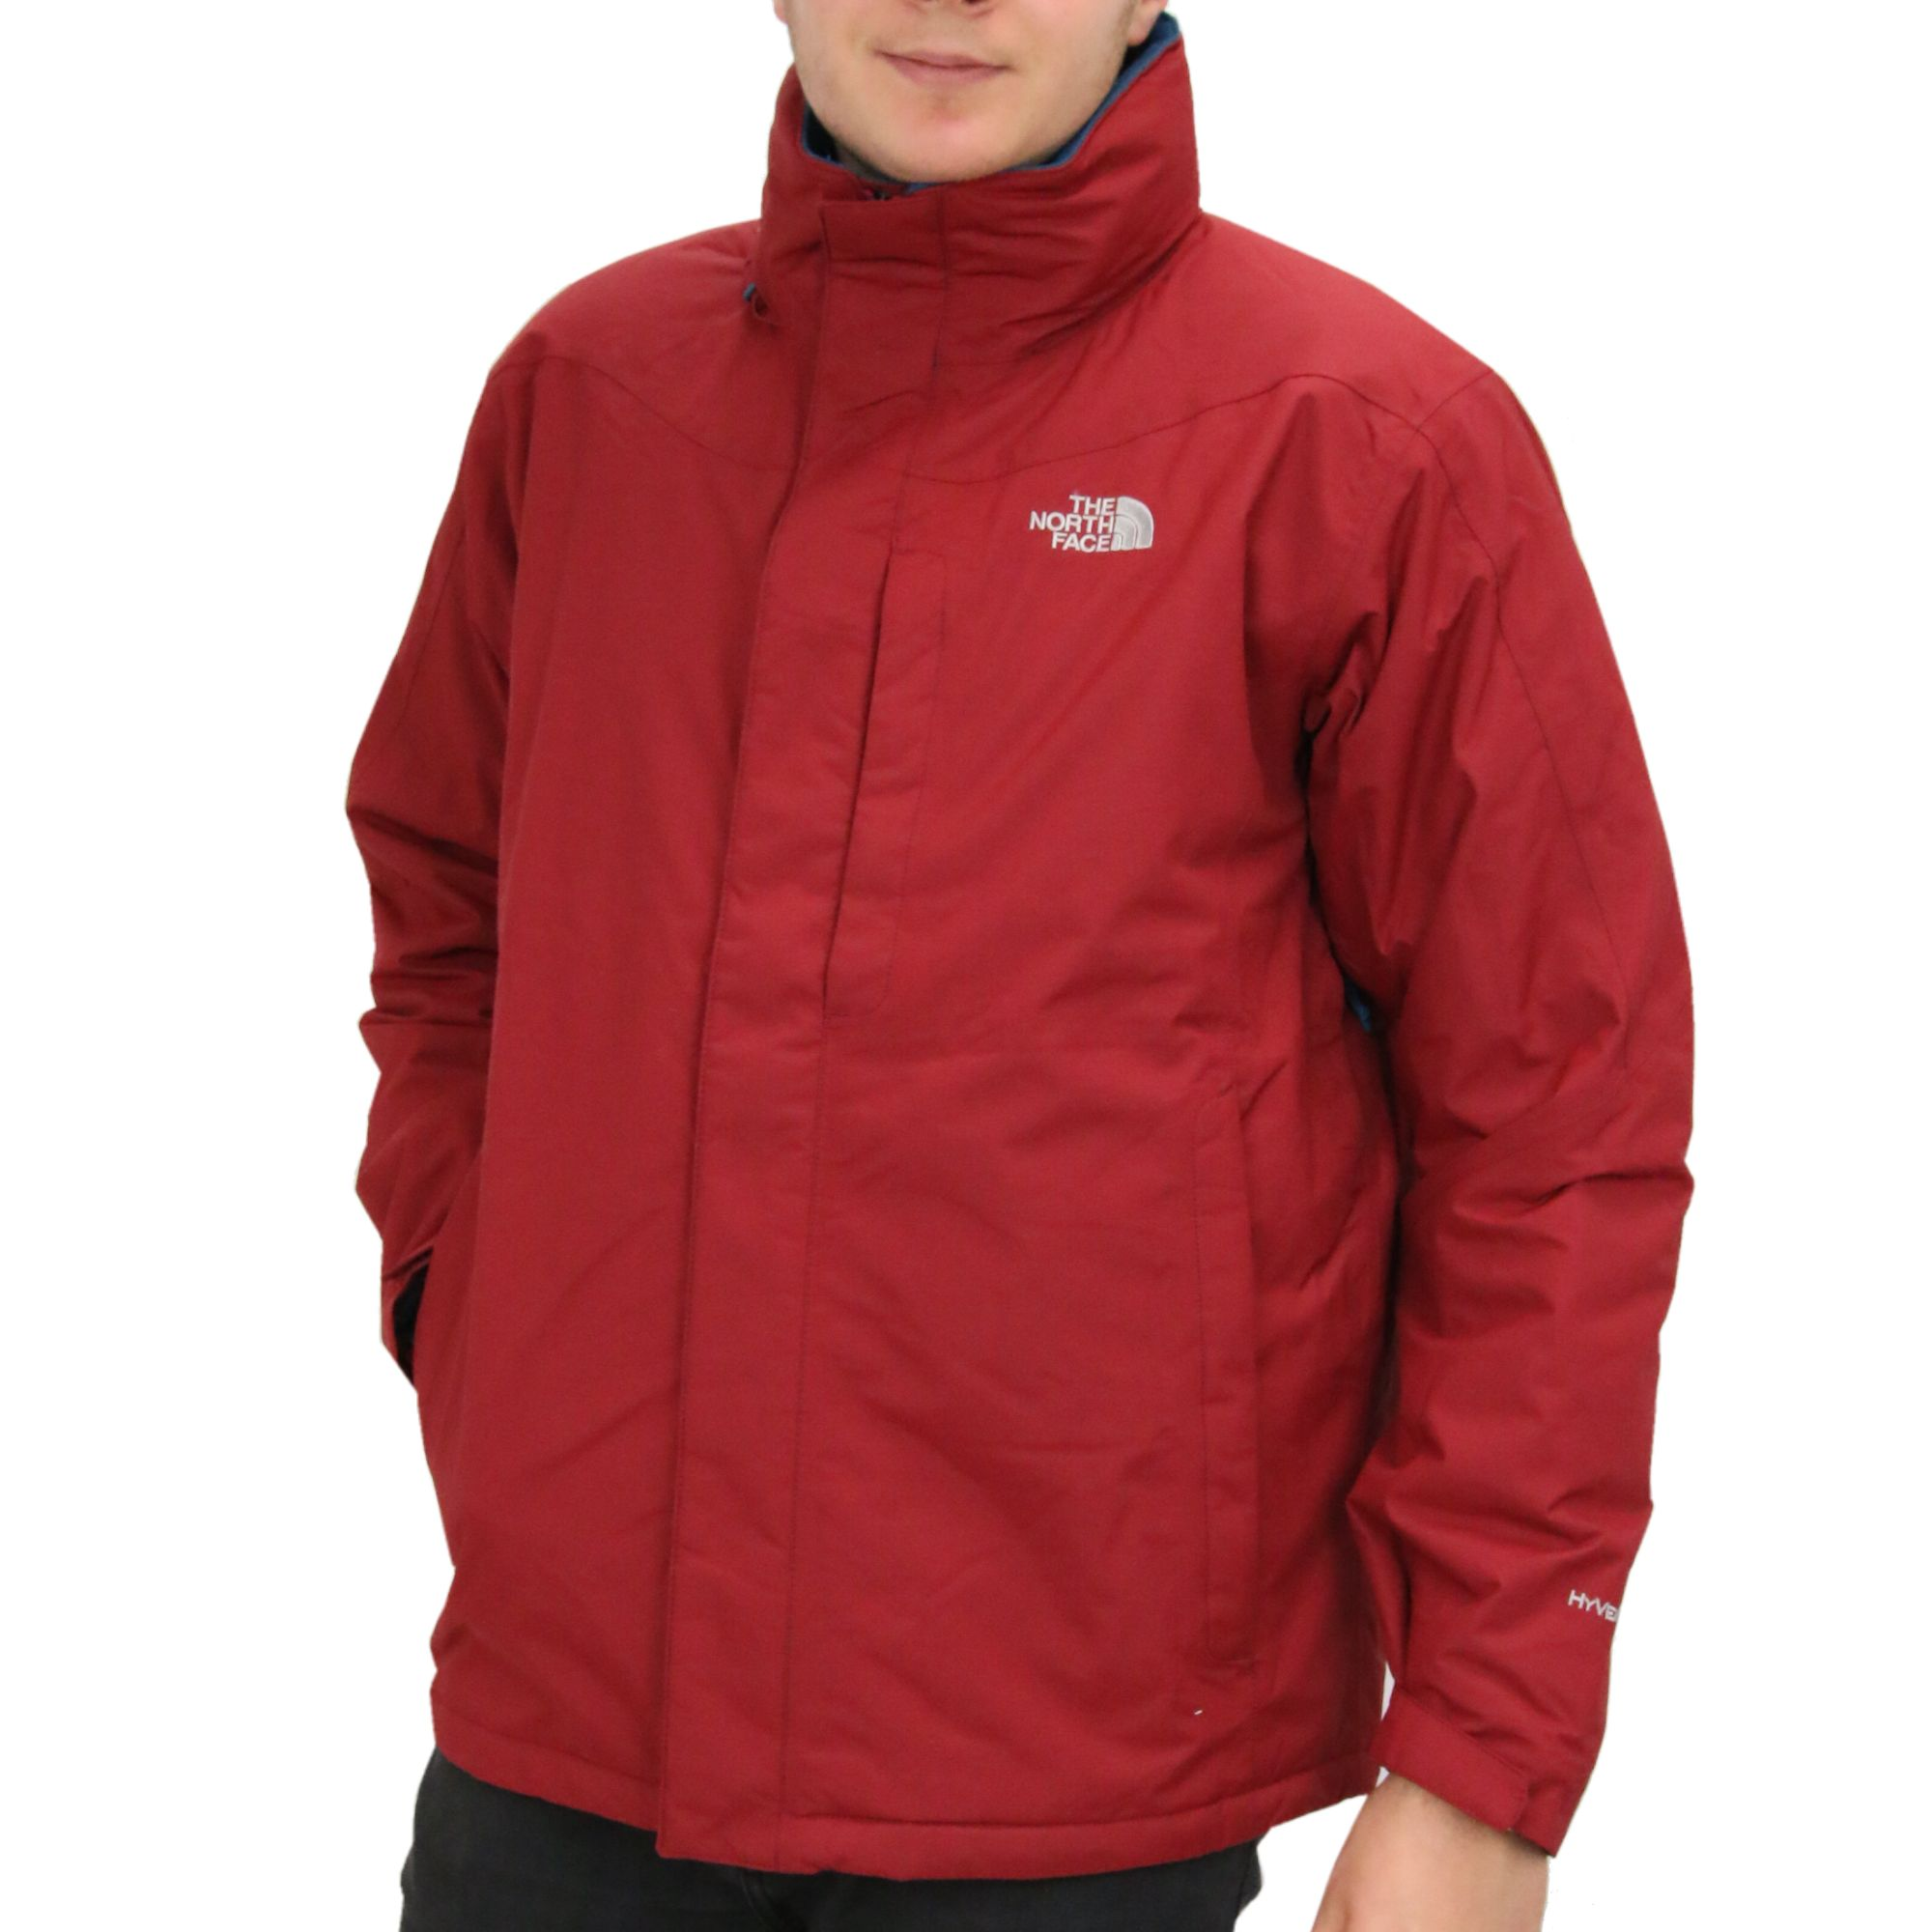 The-North-Face-Highland-Jacket-Jacke-Winterjacke-wasserdicht-Herren-Rot-Schwarz